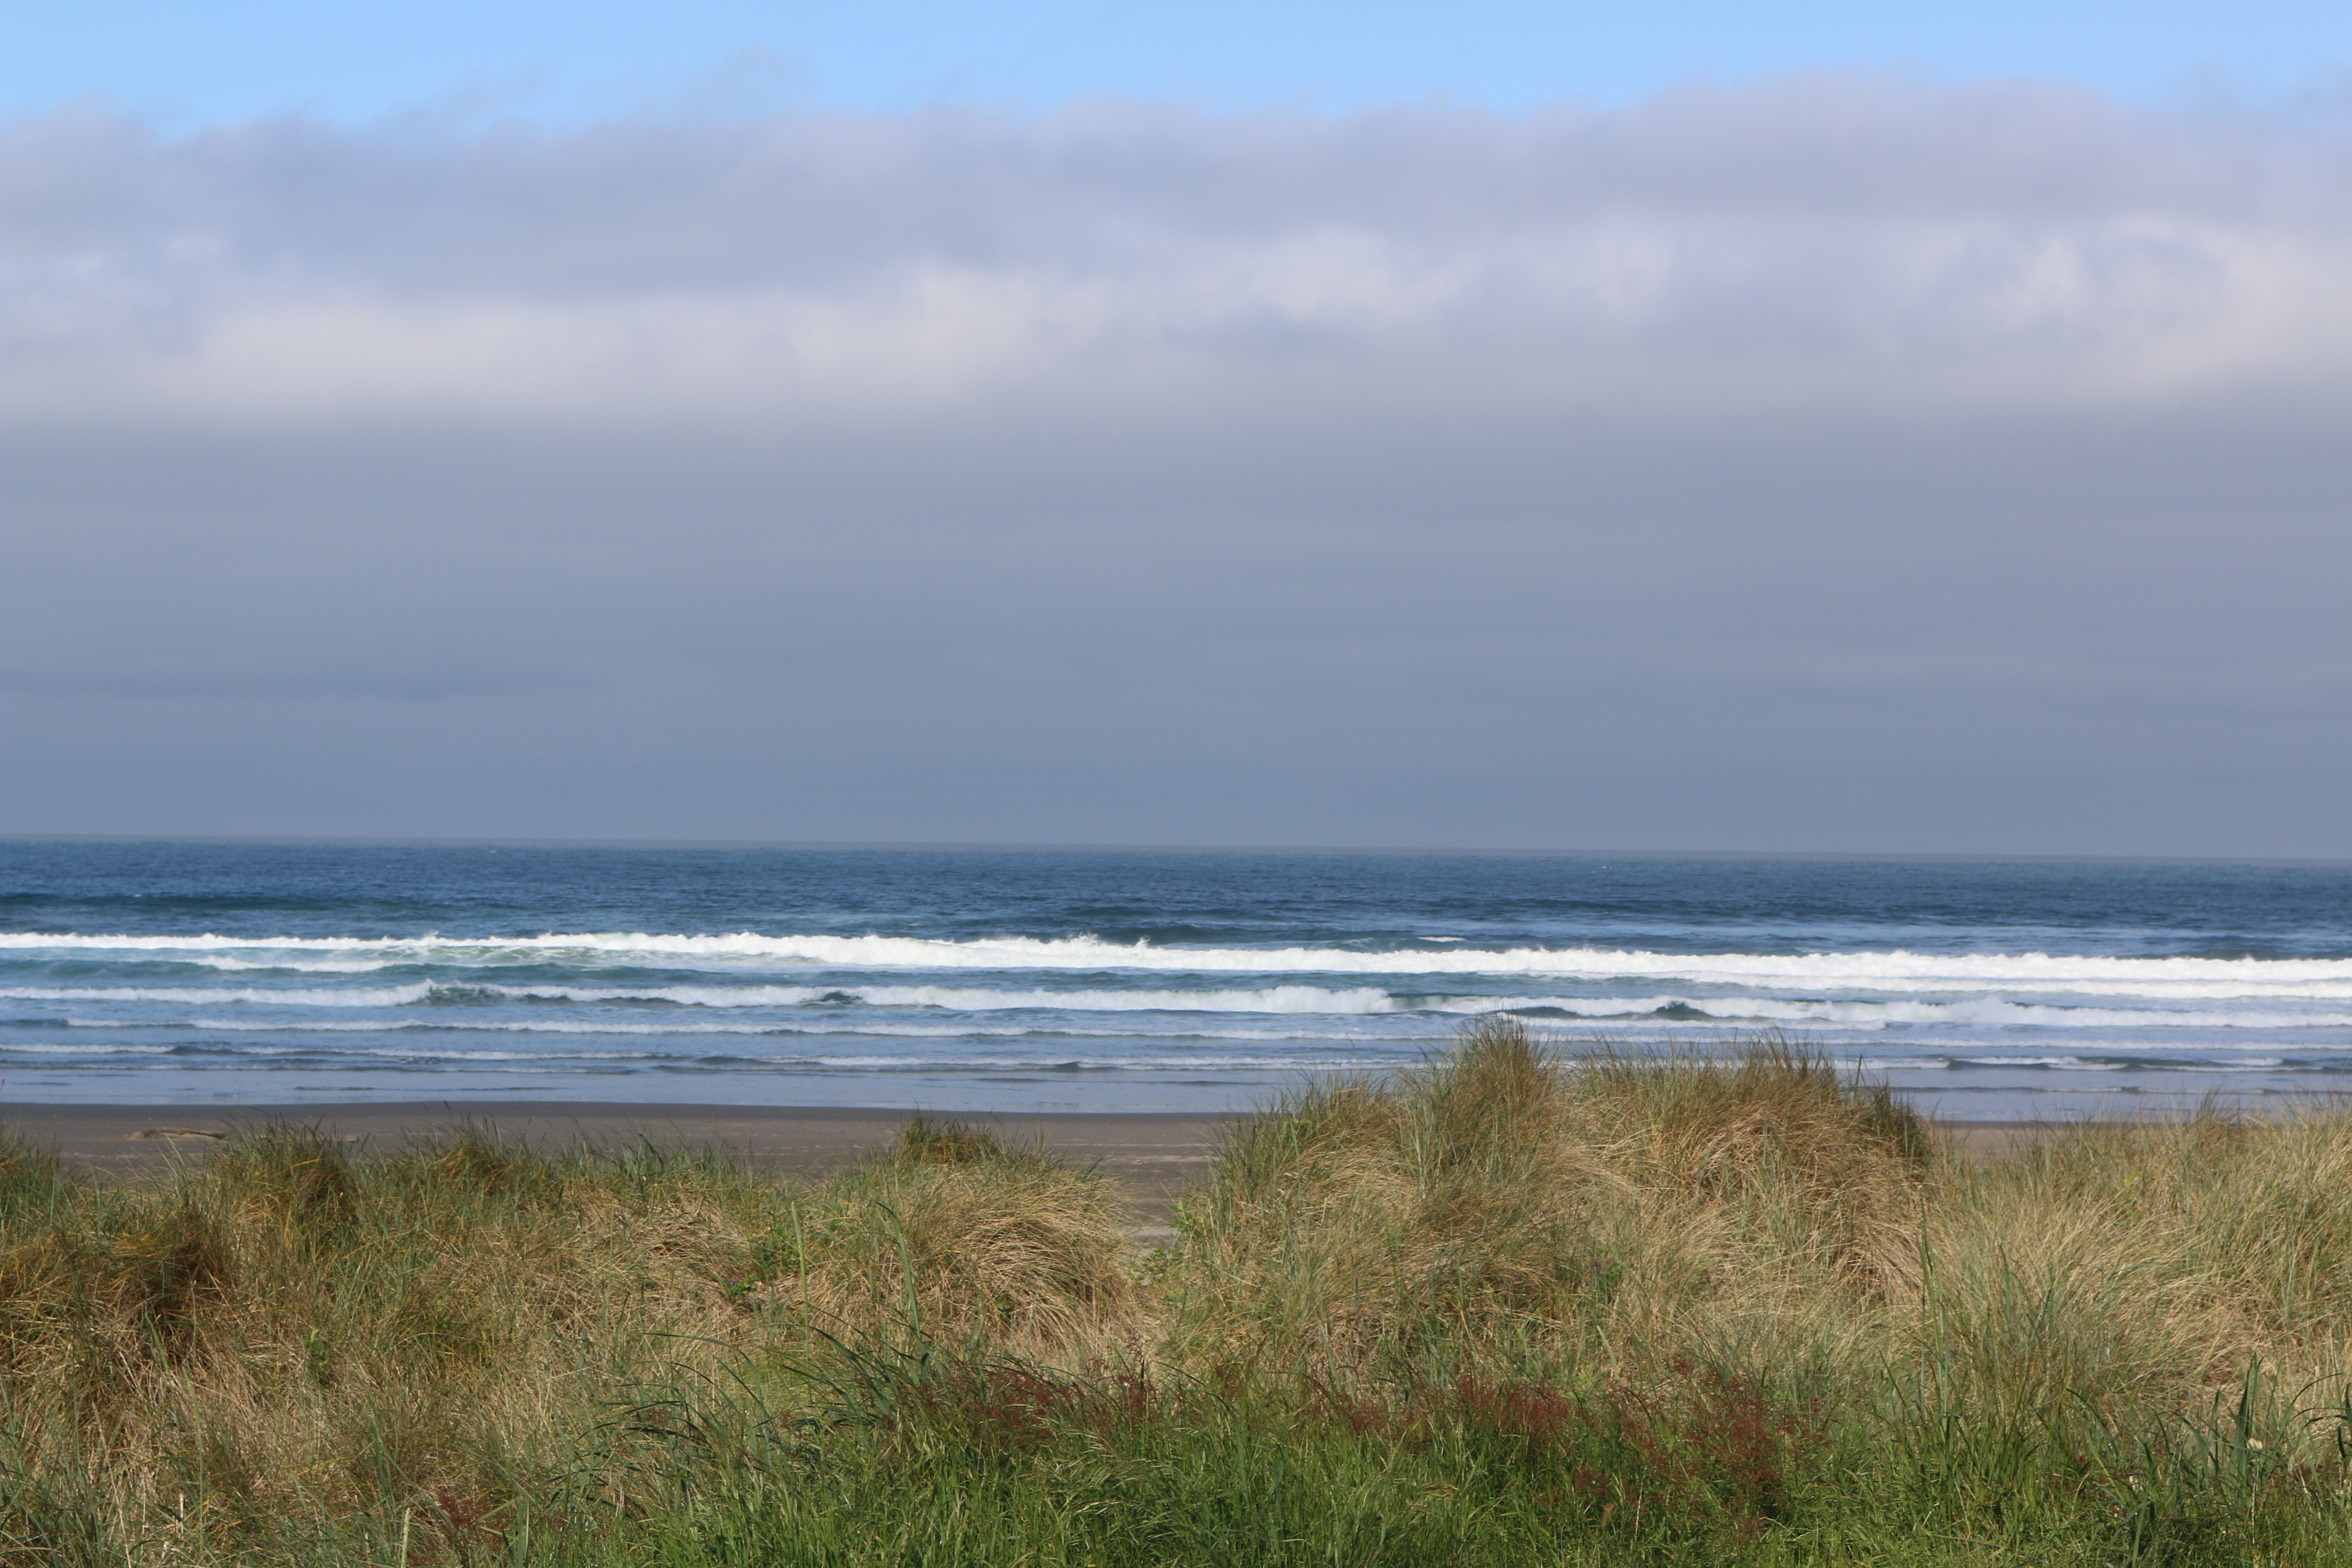 The Pacific ocean with beach grass in the foreground.